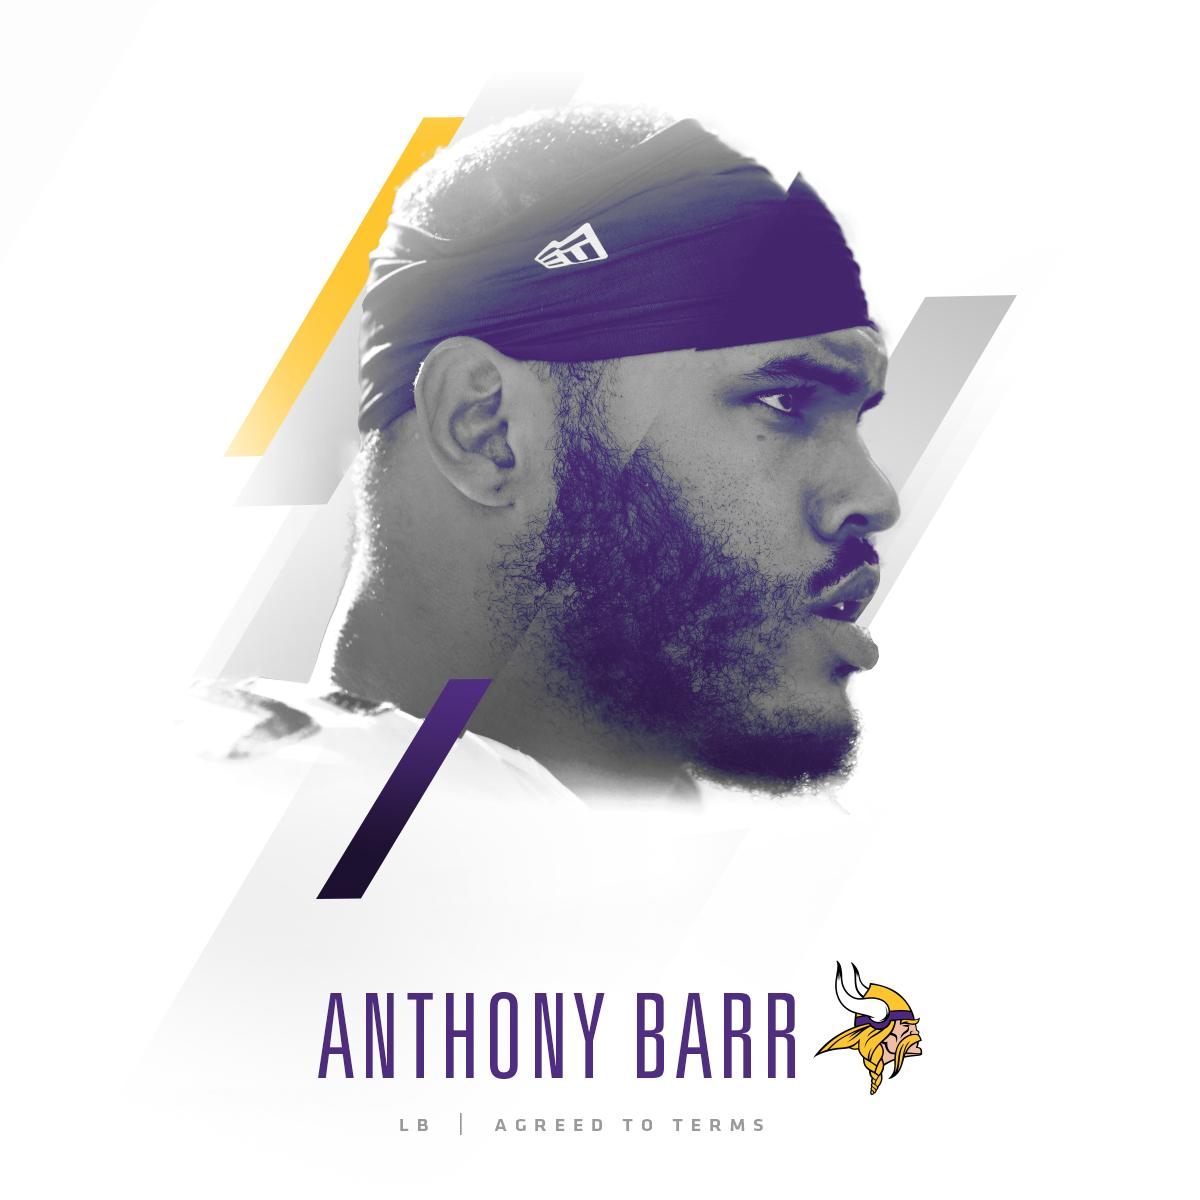 �� ROSTER MOVES ��  We have agreed to terms with @AnthonyBarr and Shamar Stephen.   ��: https://t.co/4FOC3fw03o https://t.co/0mZNbMSXsx